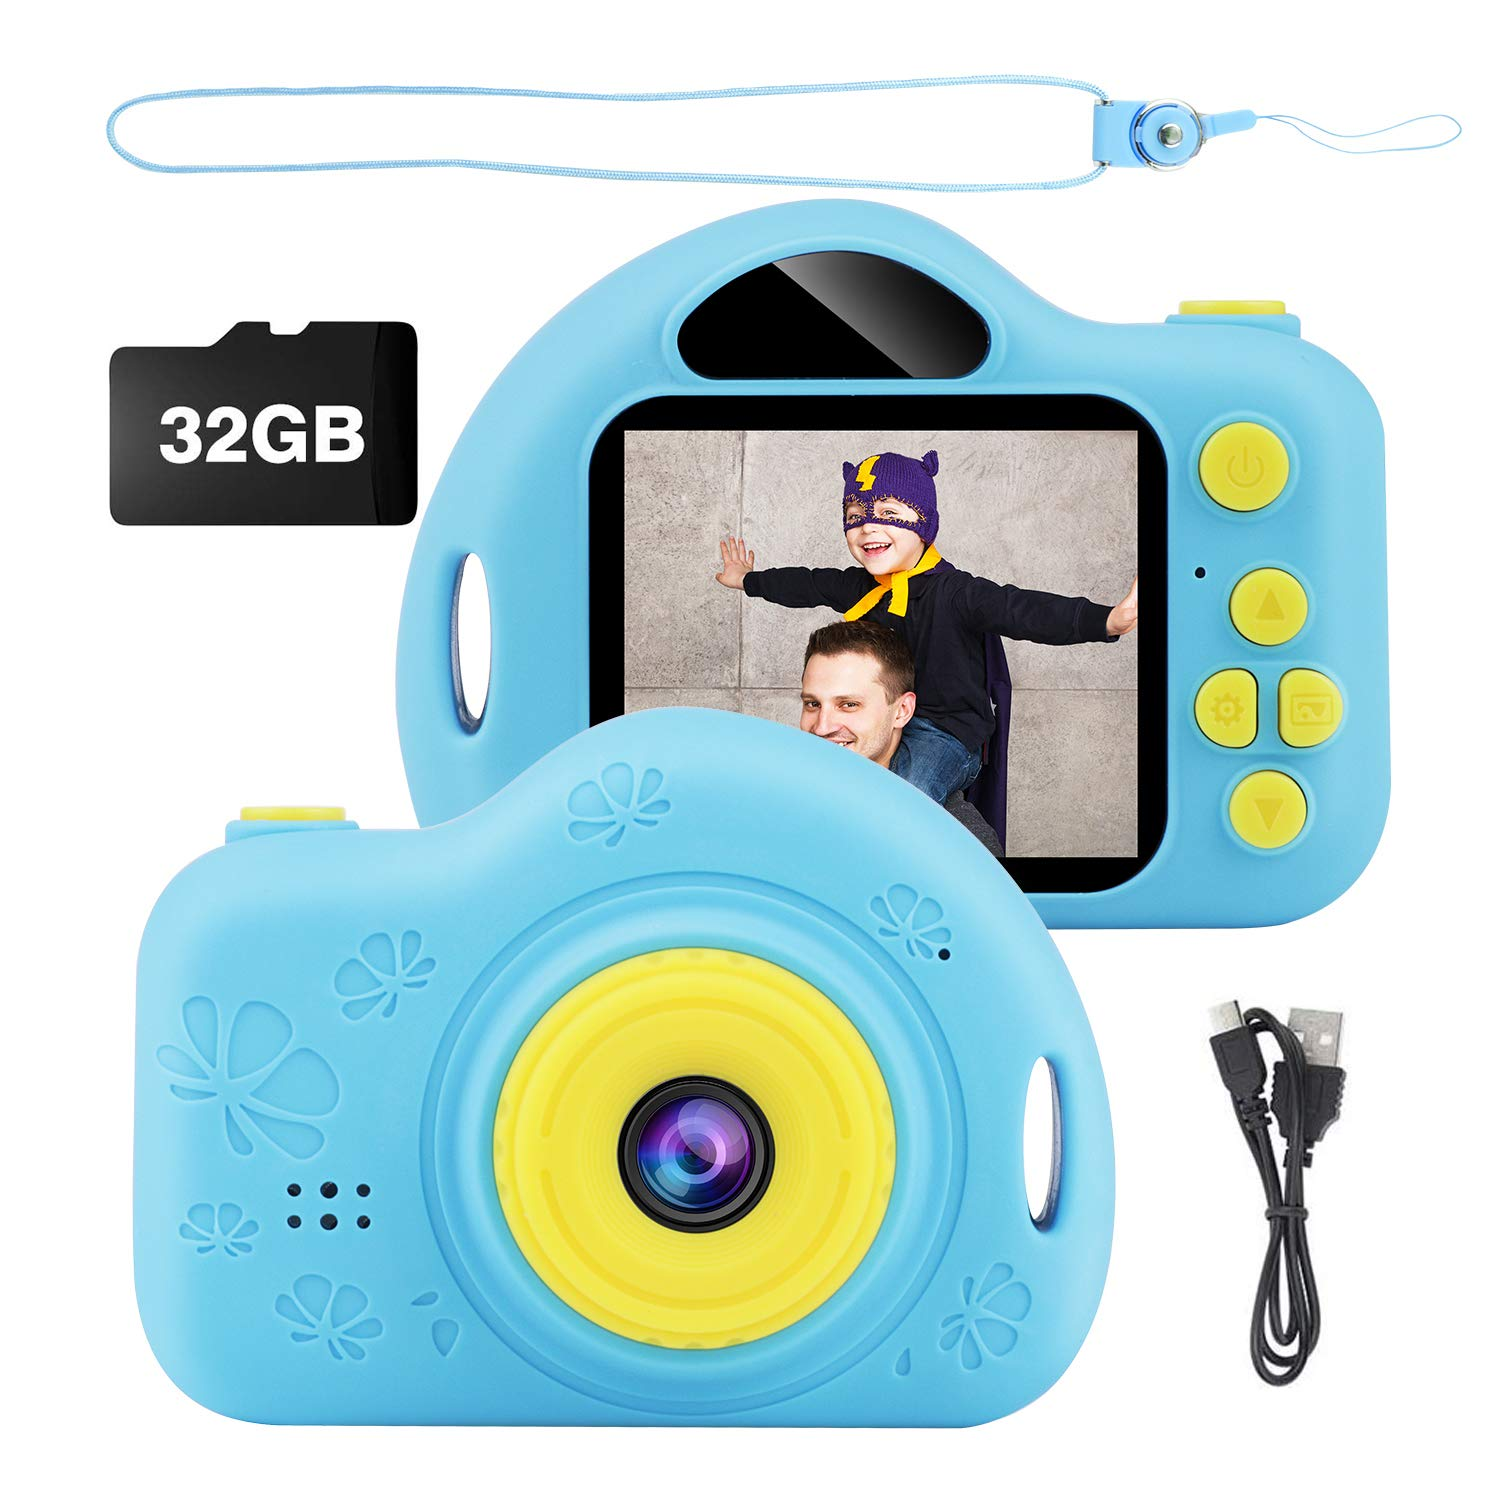 Kids Camera, Digital Video Camera Children Creative DIY Camcorder with Rechargeable Battery Birthday / Christmas / New Year Toy Gifts for 3 4 5 6 7 8 9 10 Year Old Boys Girls with 32GB SD Card - Blue by Trofoty